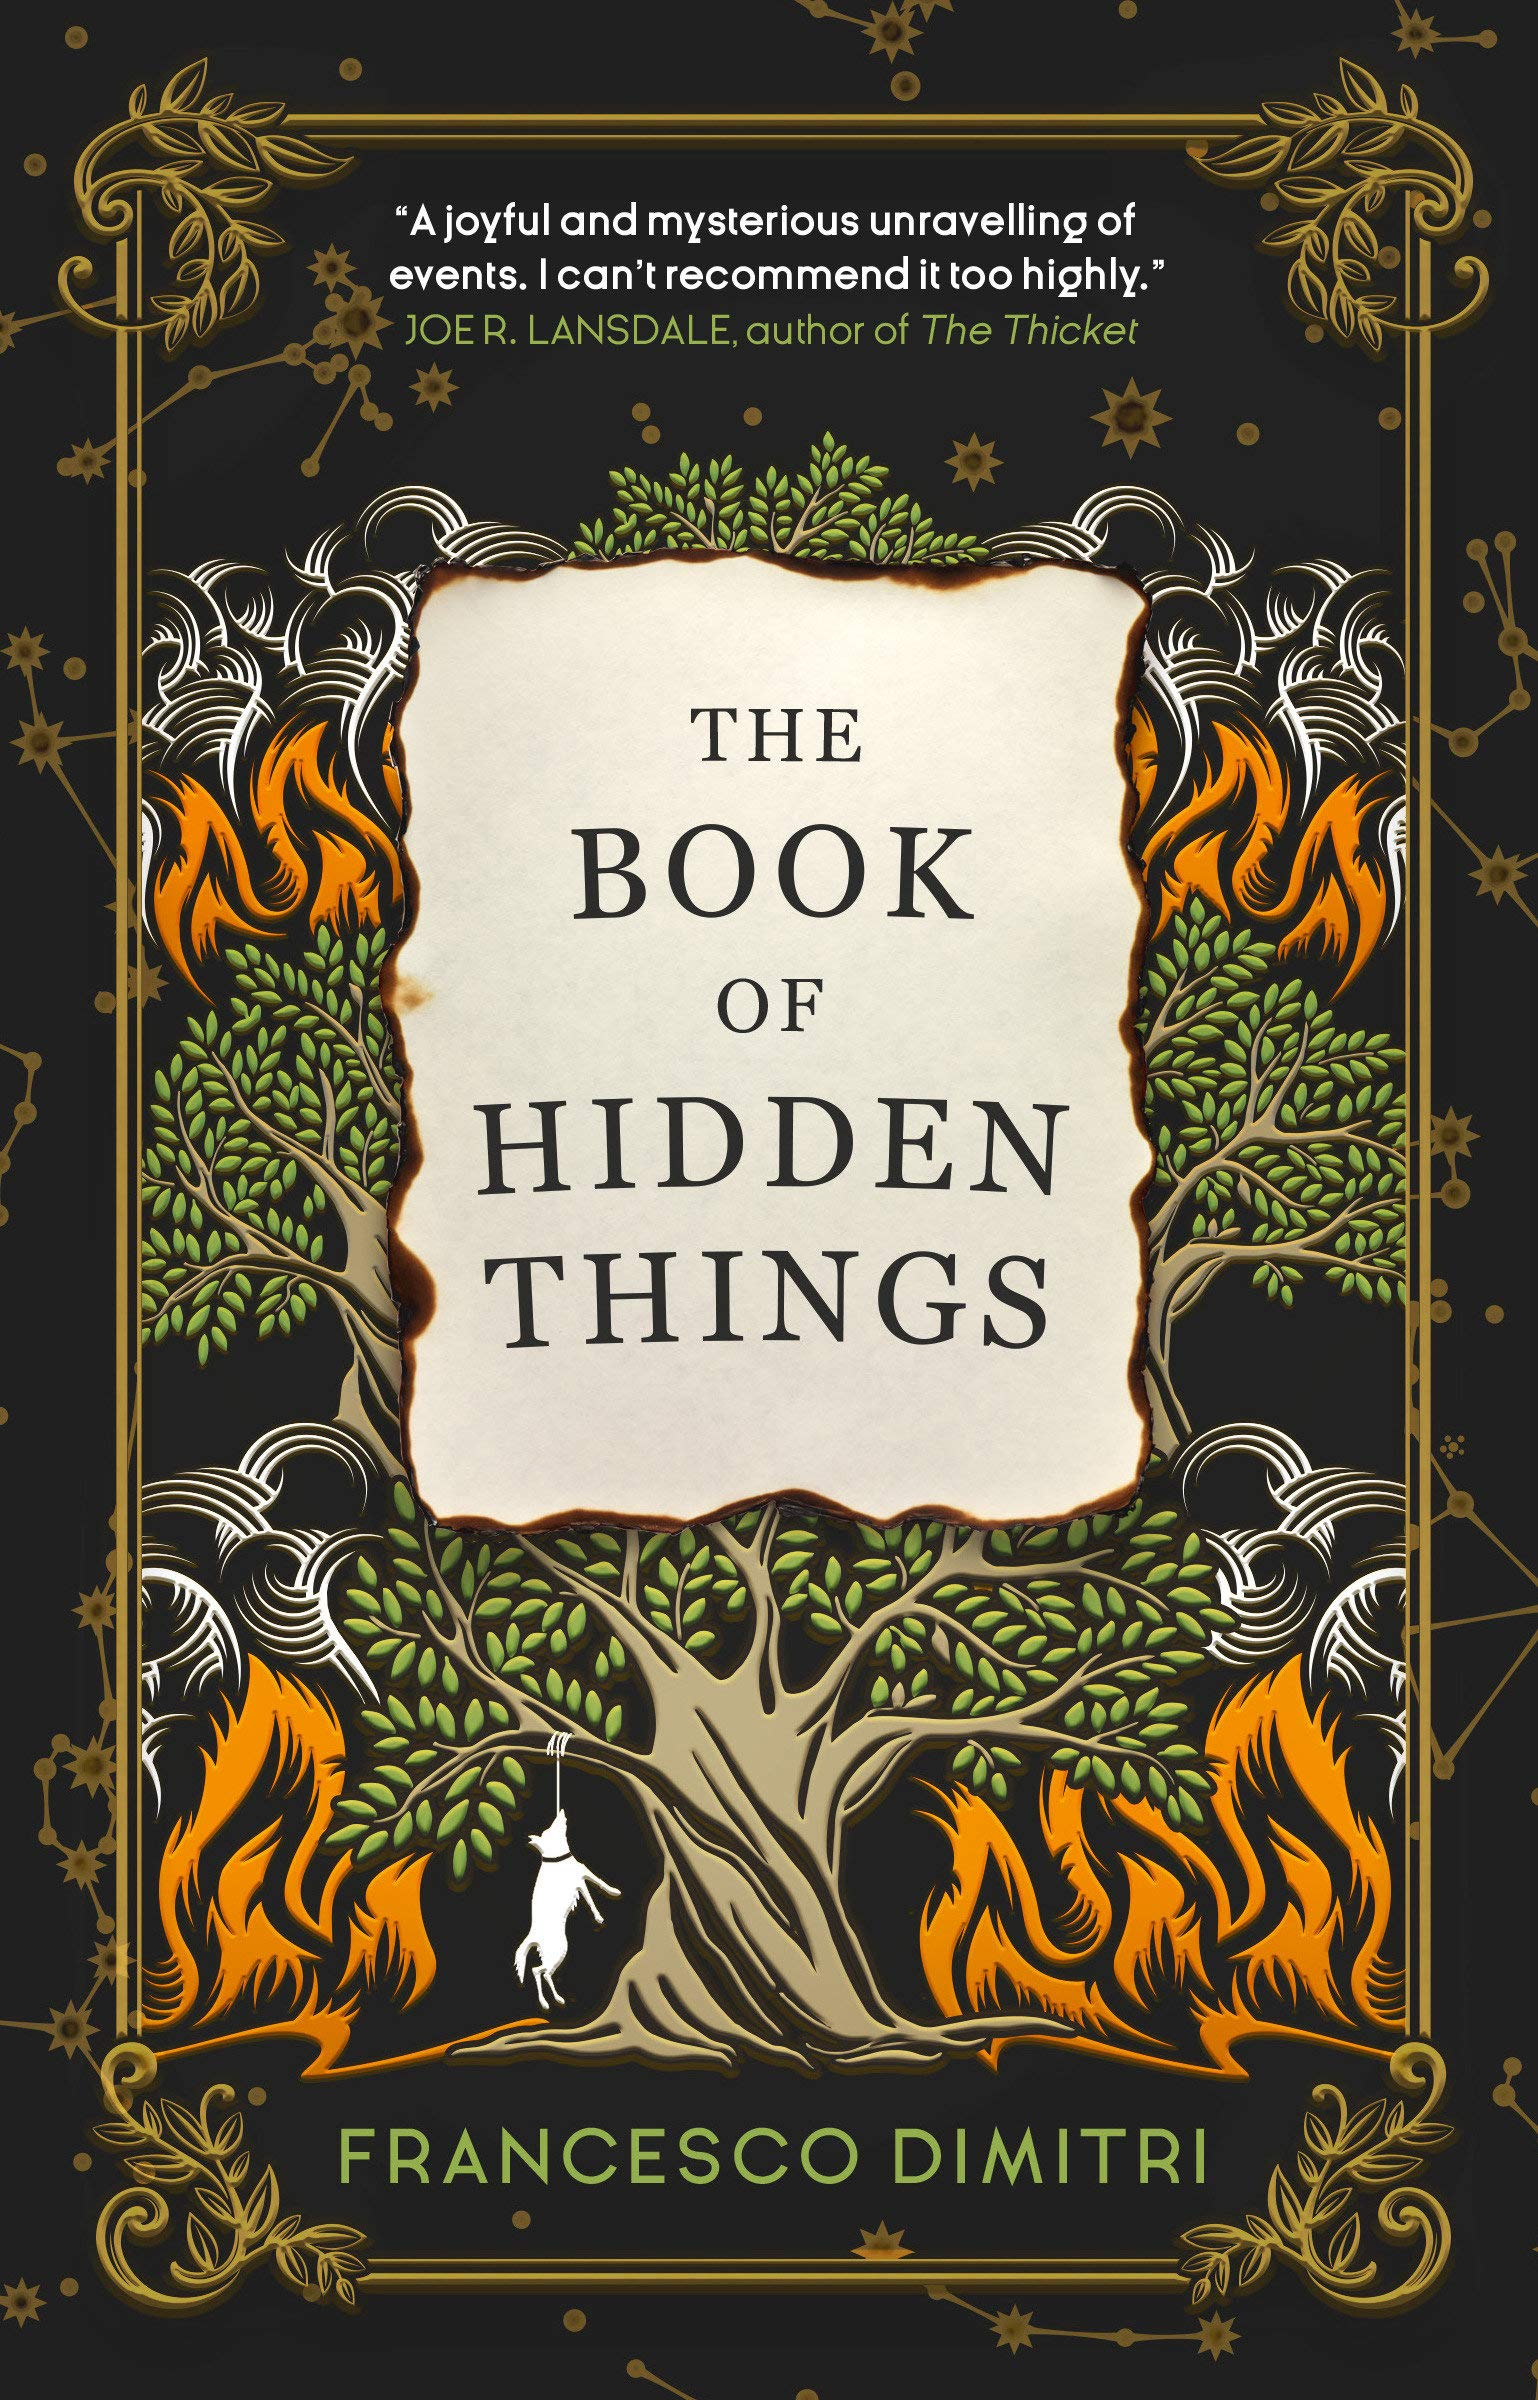 Amazon.com: The Book of Hidden Things (9781785657078): Francesco Dimitri:  Books